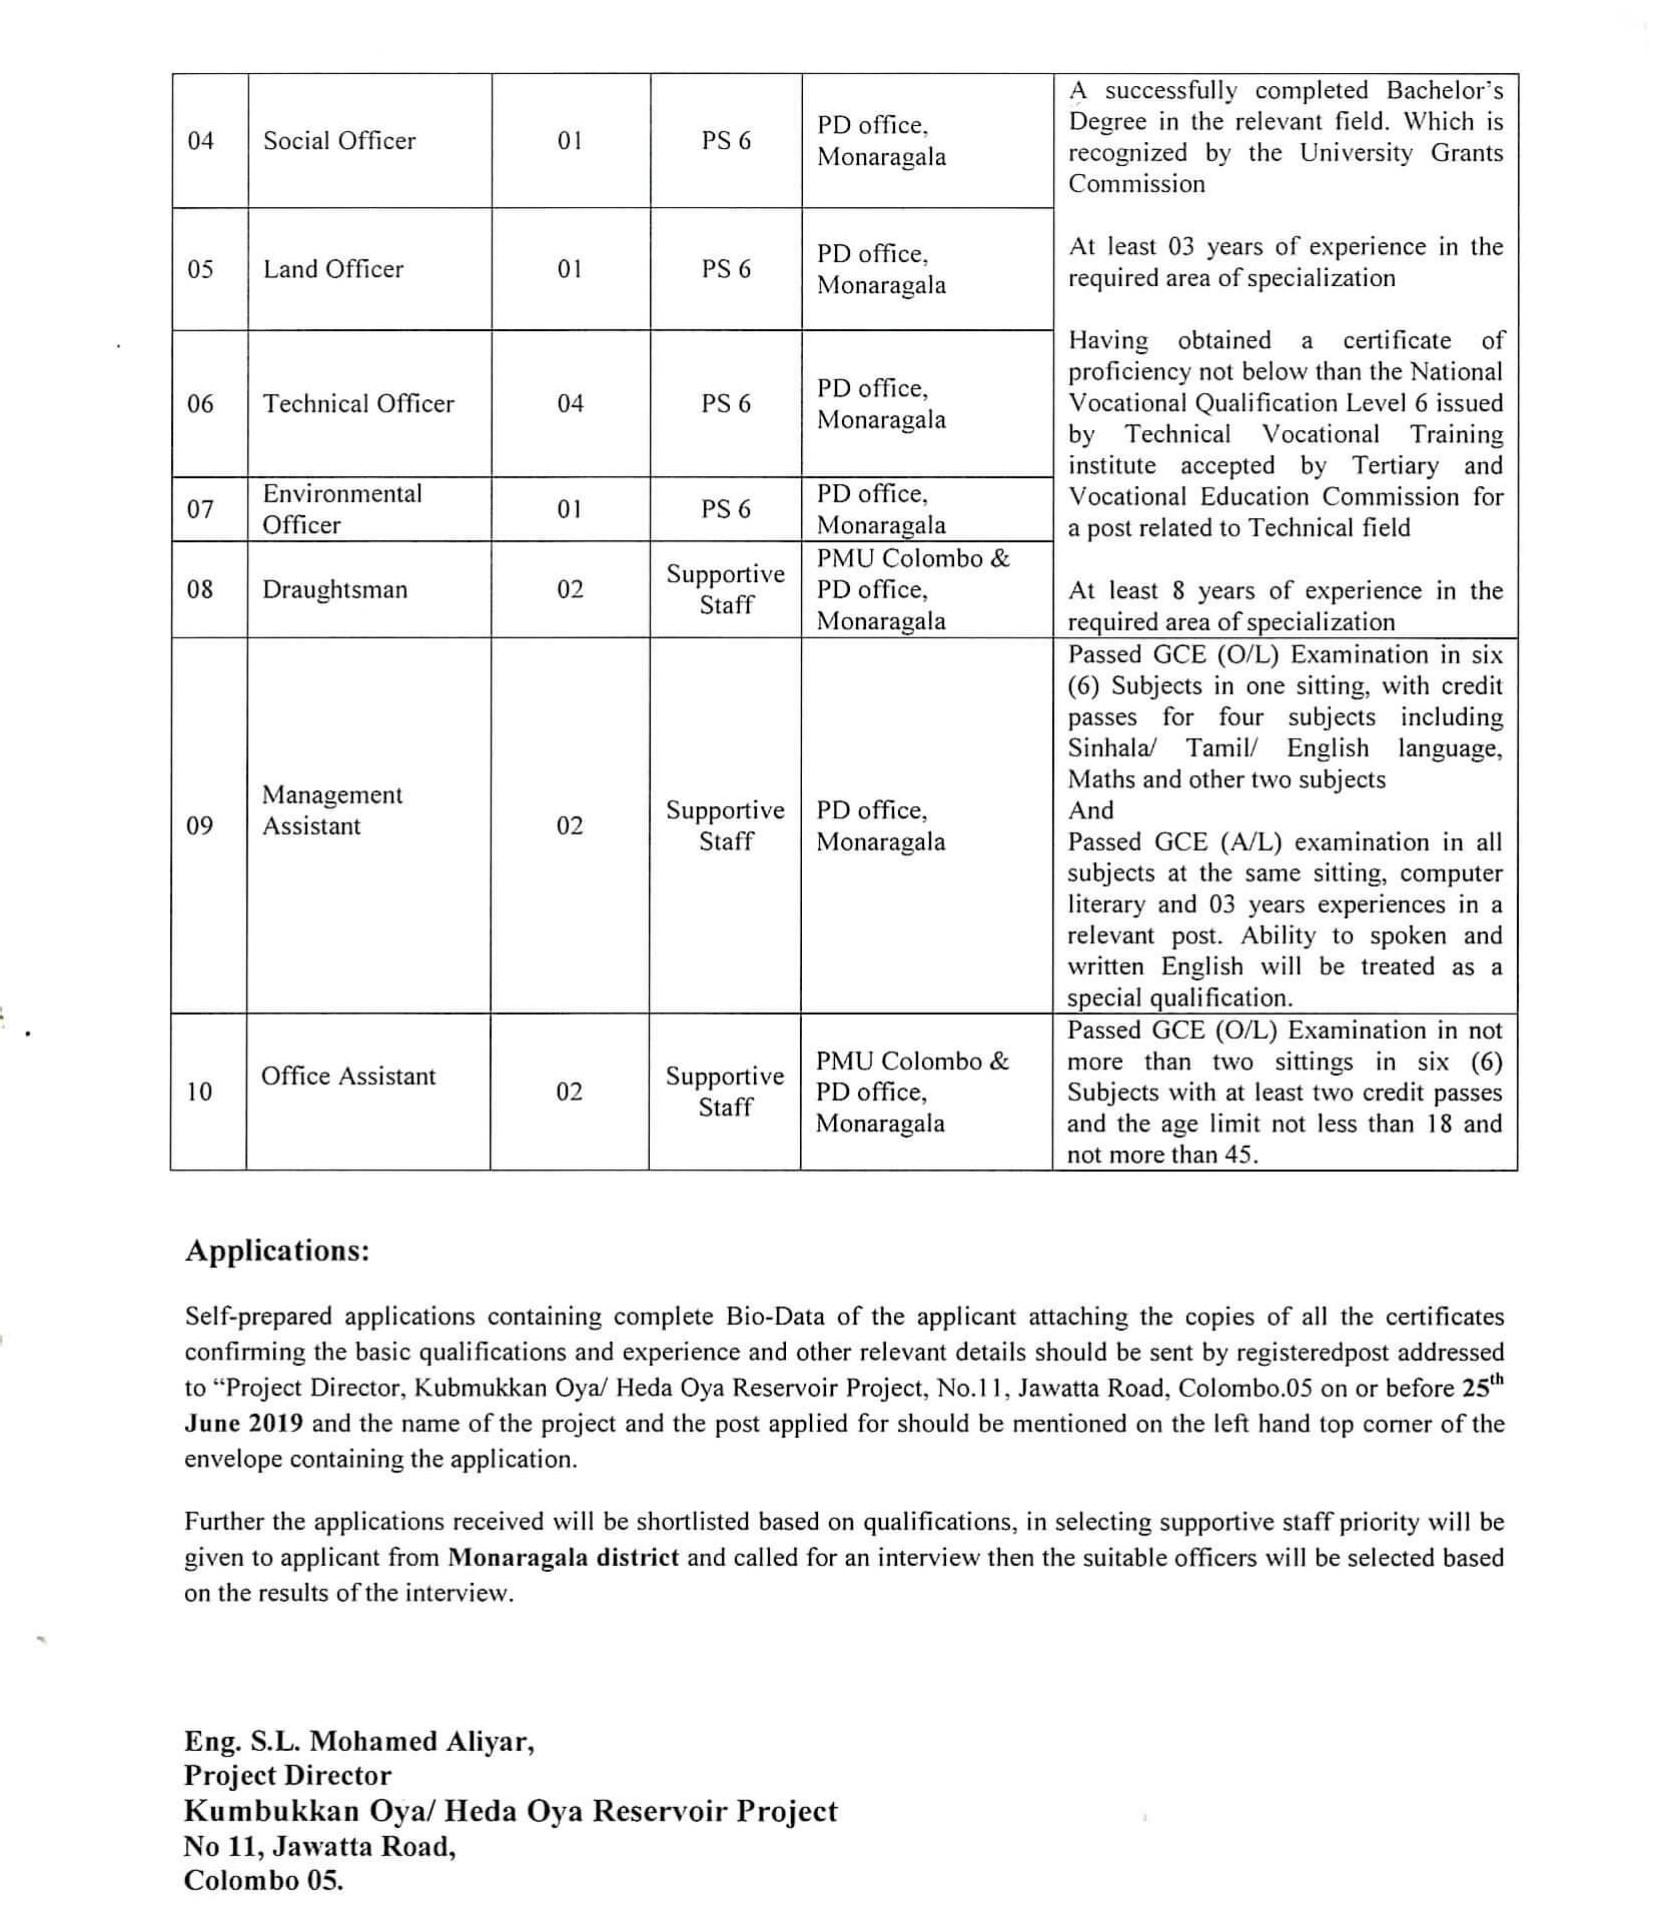 Management Assistant, Office Assistant, Draughtsman, Environmental Officer, Technical Officer, Land Officer, Social Officer, Project Engineer (Civil) - Department of Irrigation